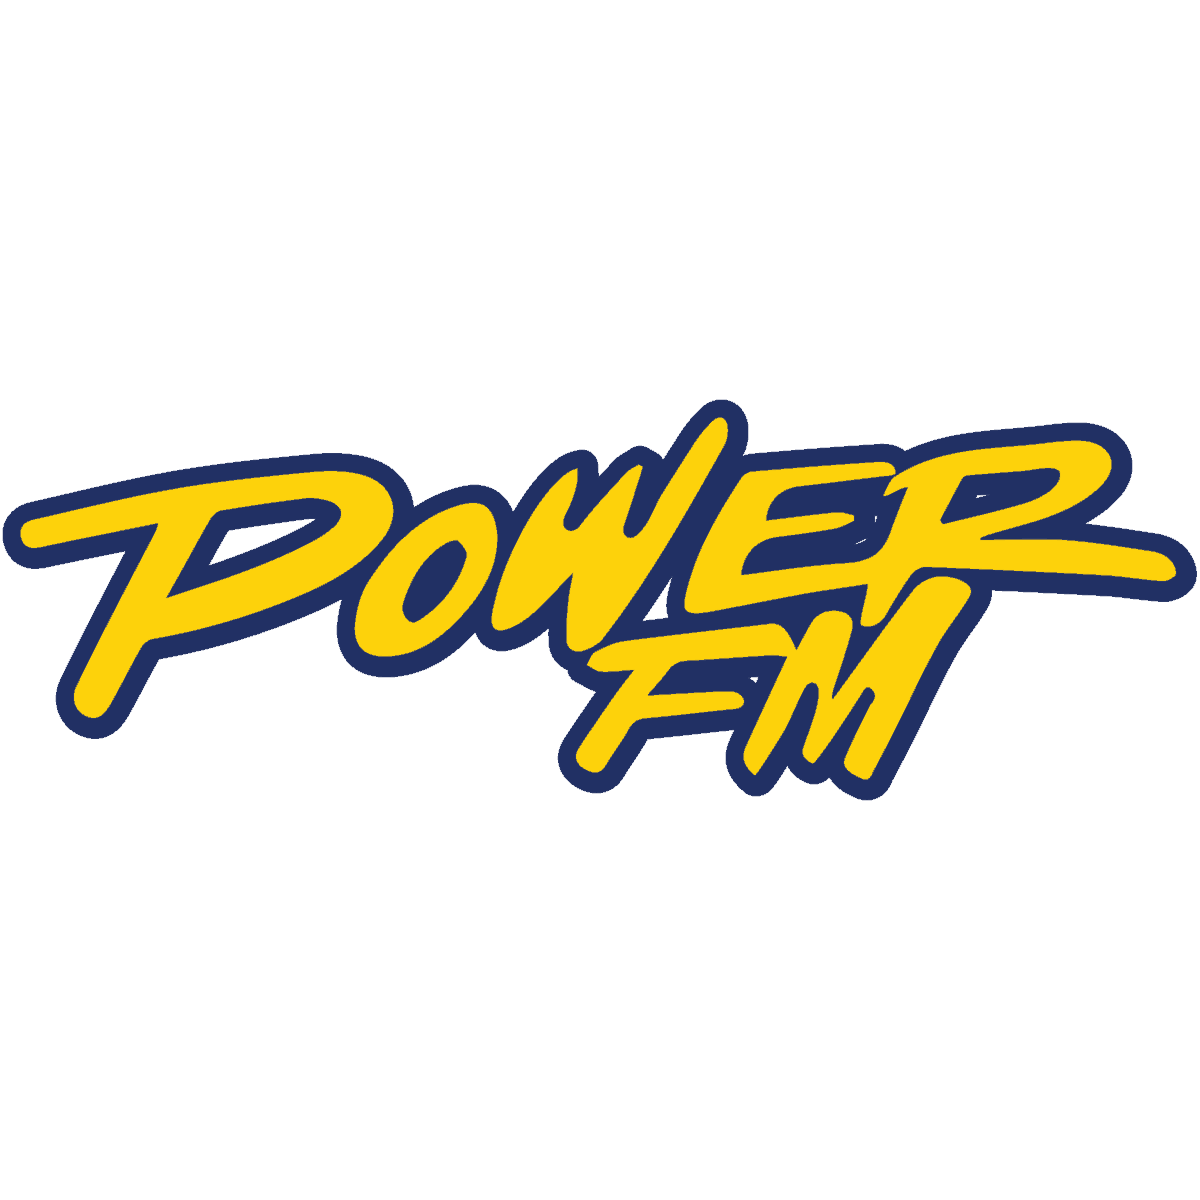 https://www.specialstrong.com/wp-content/uploads/2019/09/MUR_POWER_FM_2265531_config_station_logo_image_1543892395.png